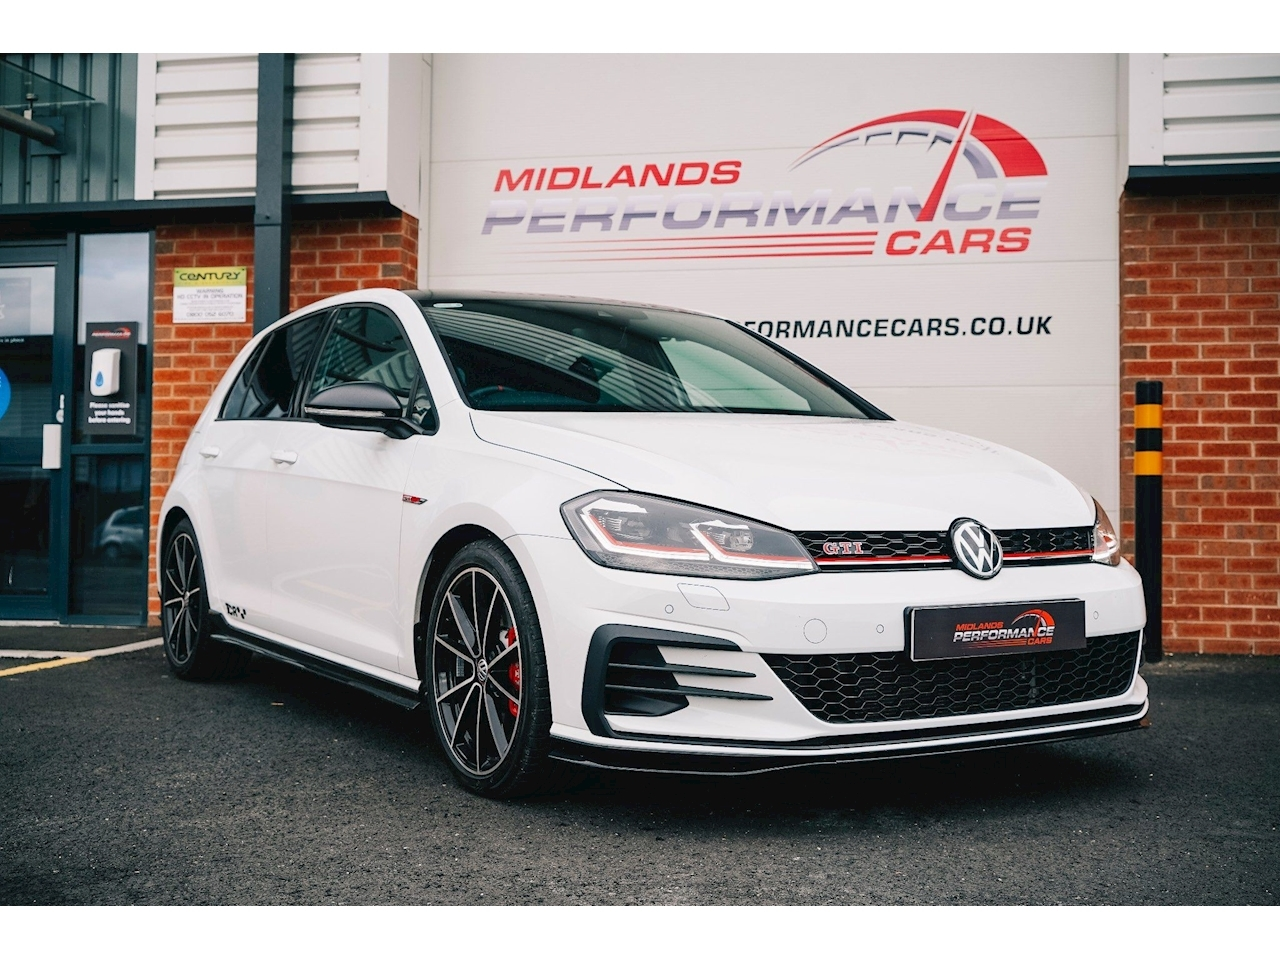 Golf Gti Tcr Dsg Hatchback 2.0 Semi Auto Petrol